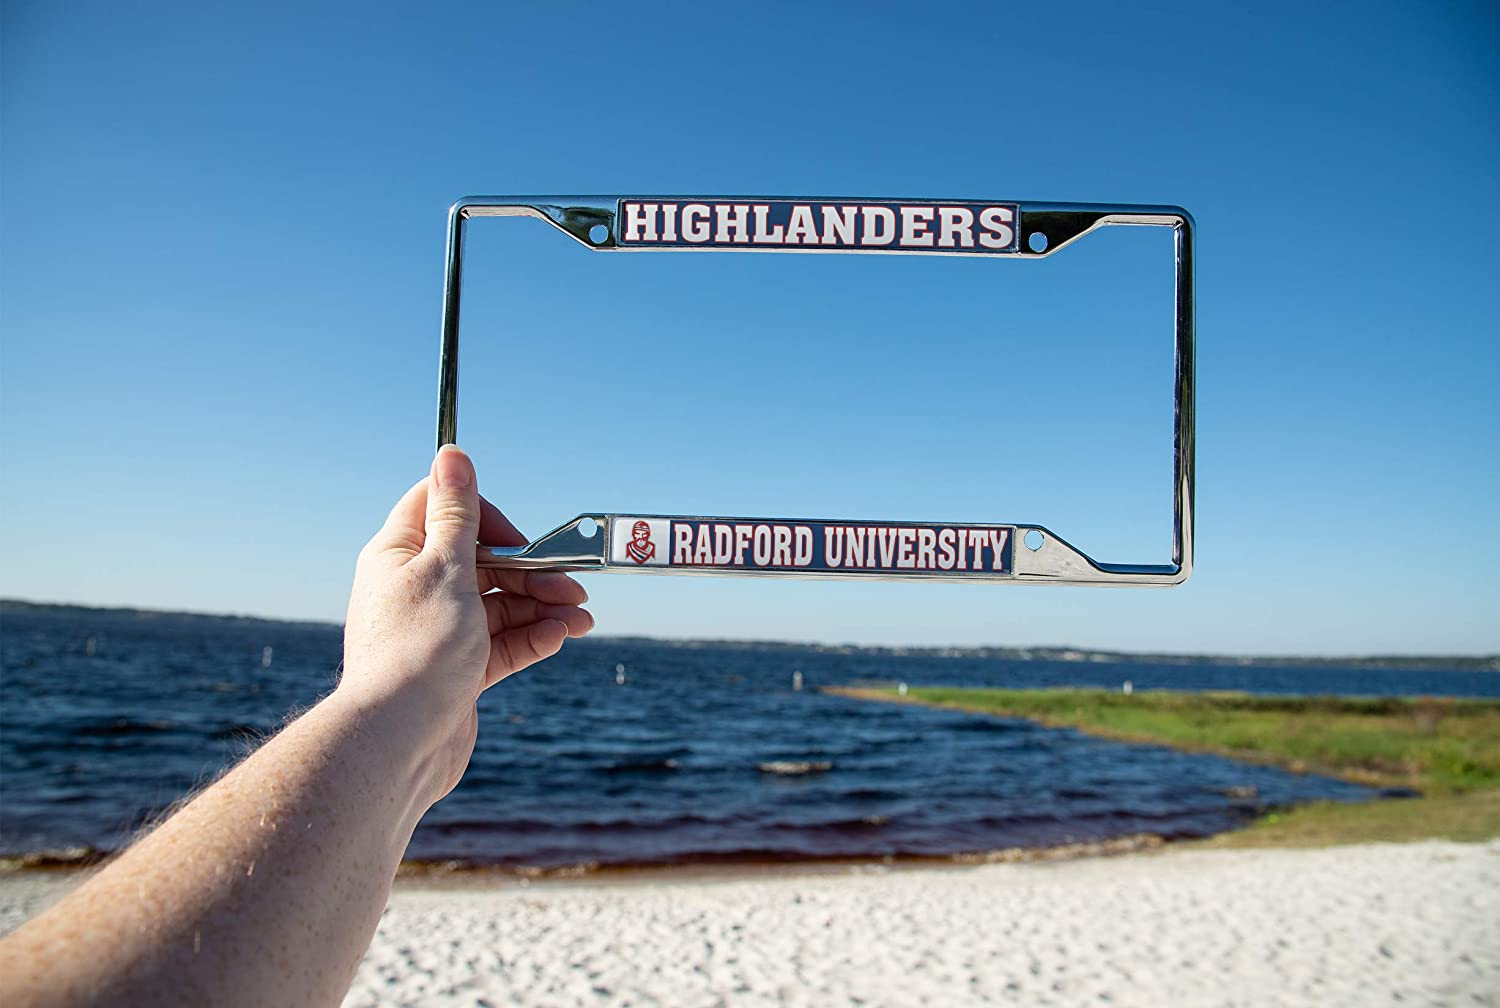 Desert Cactus Radford University Highlanders NCAA Metal License Plate Frame for Front Back of Car Officially Licensed Mascot